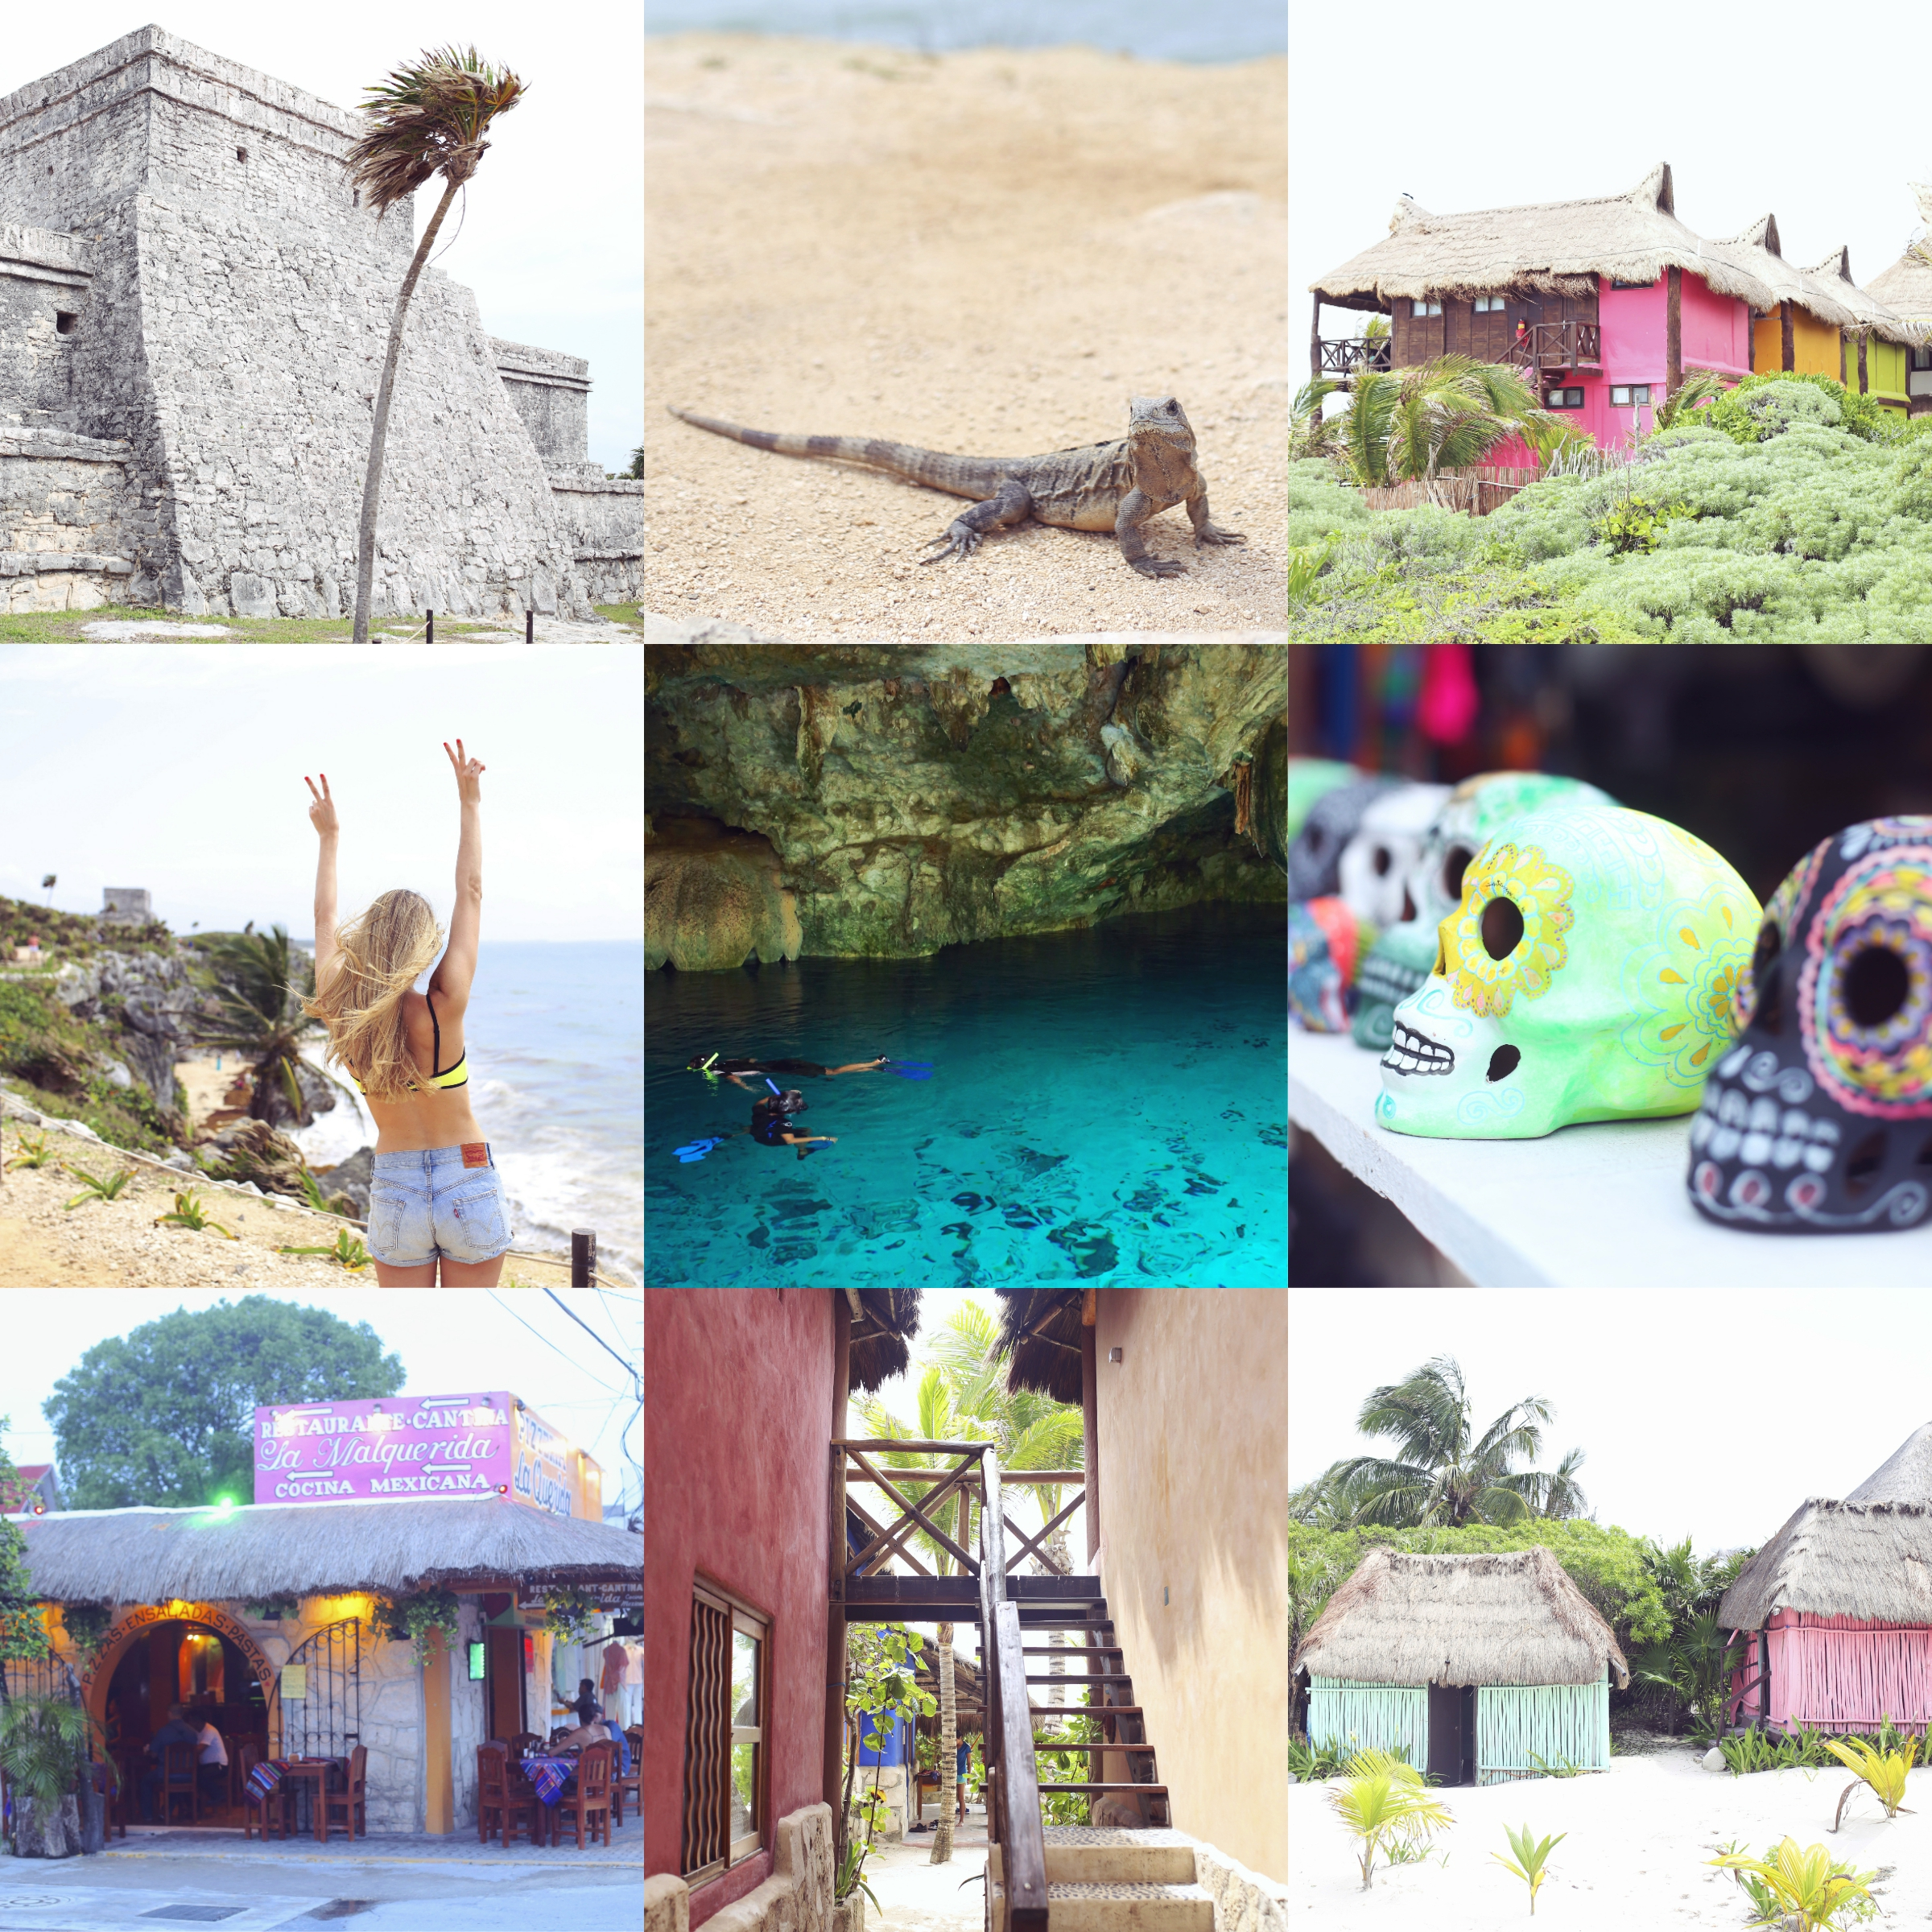 Tulum Travel Guide - Things to do in Tulum, Mexico.